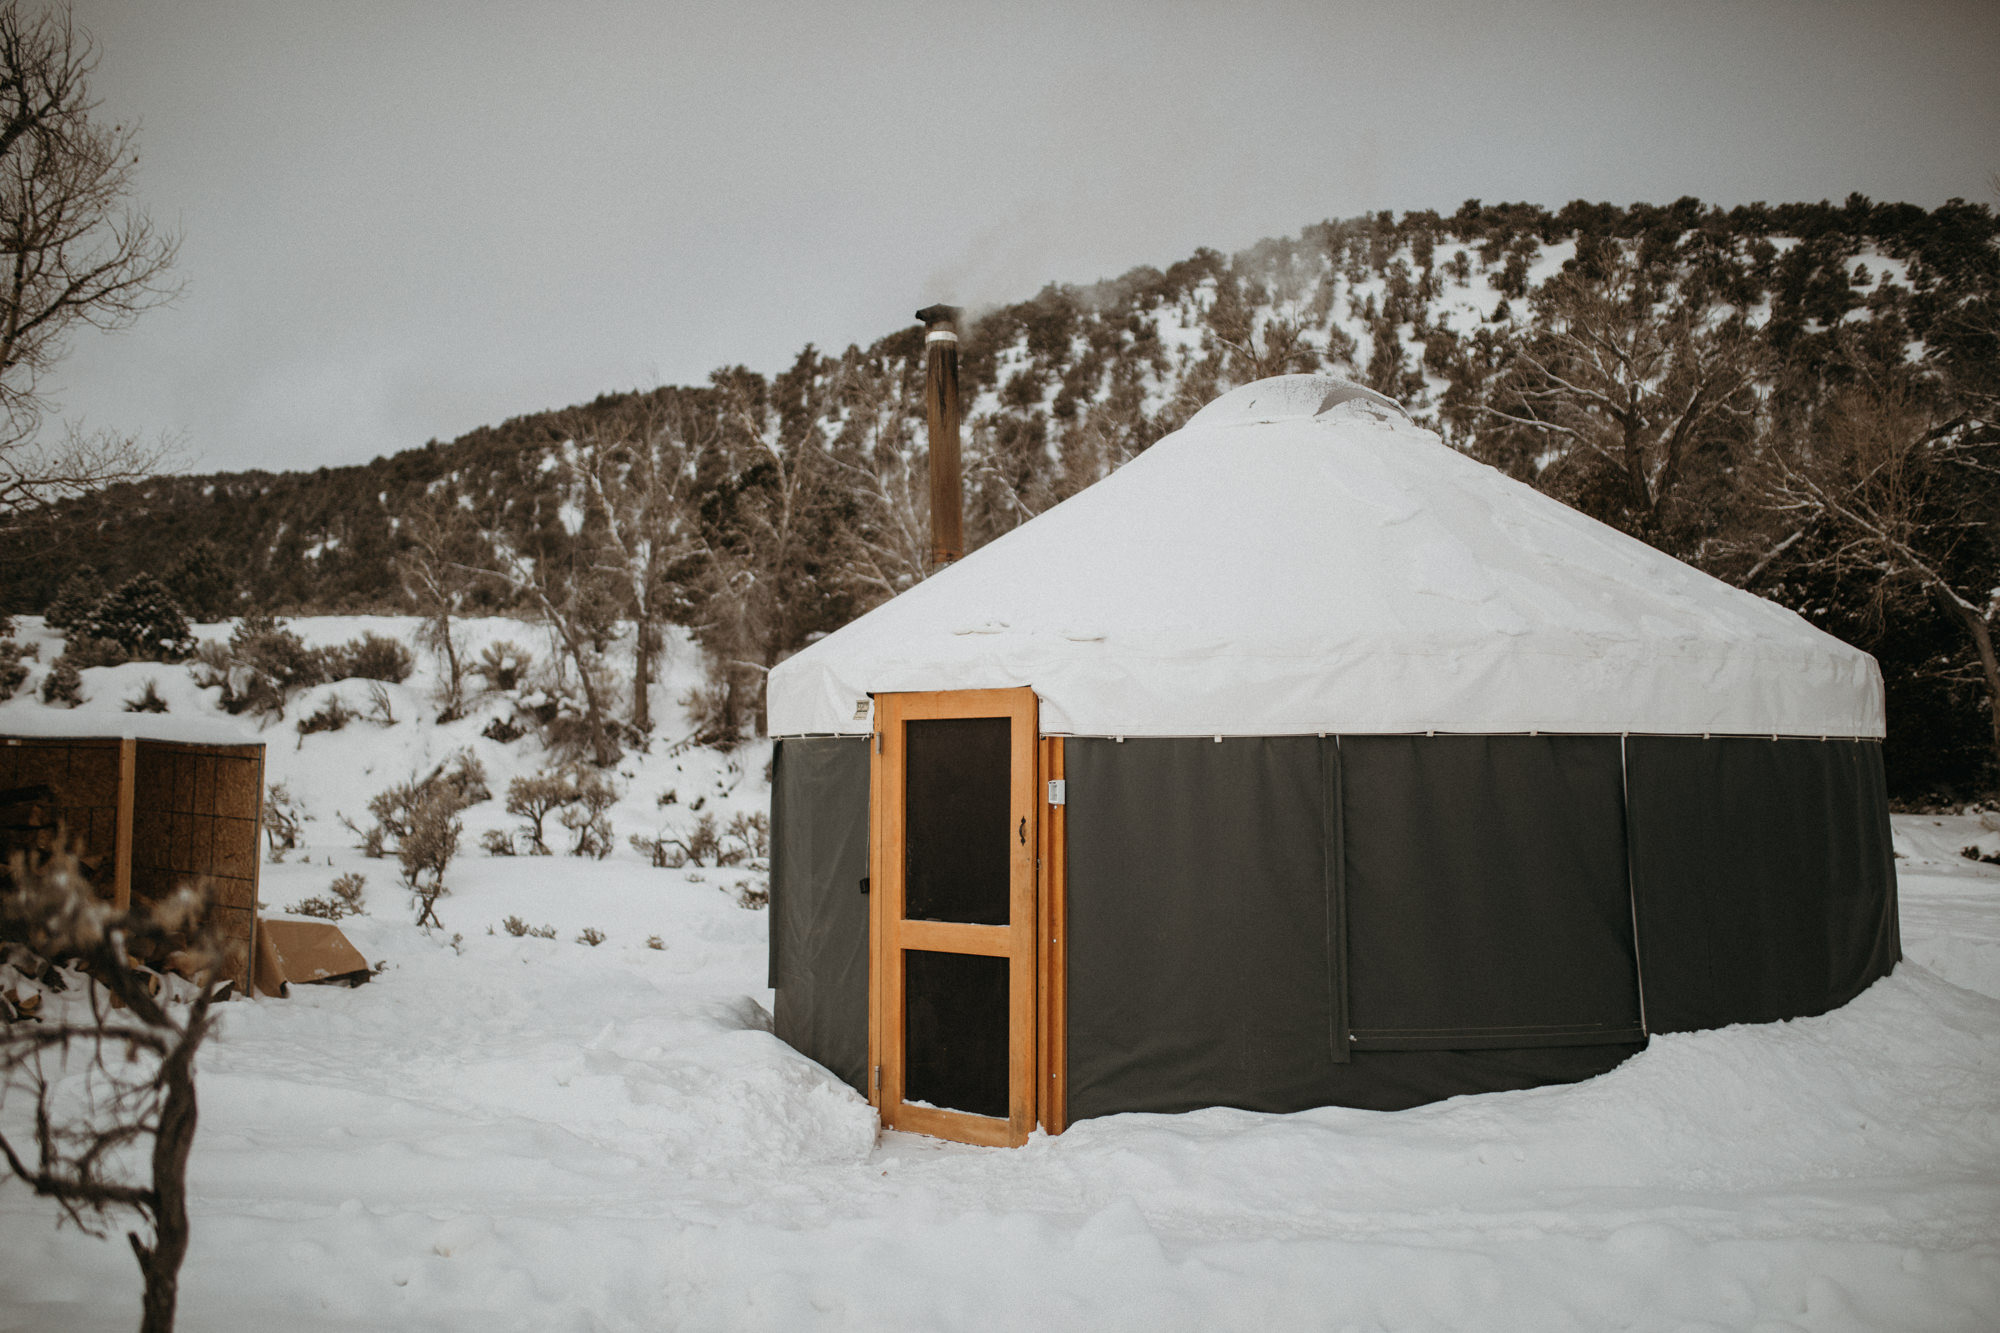 Consider booking somewhere unique & really get amongst it, like a badass Yurt in Utah!